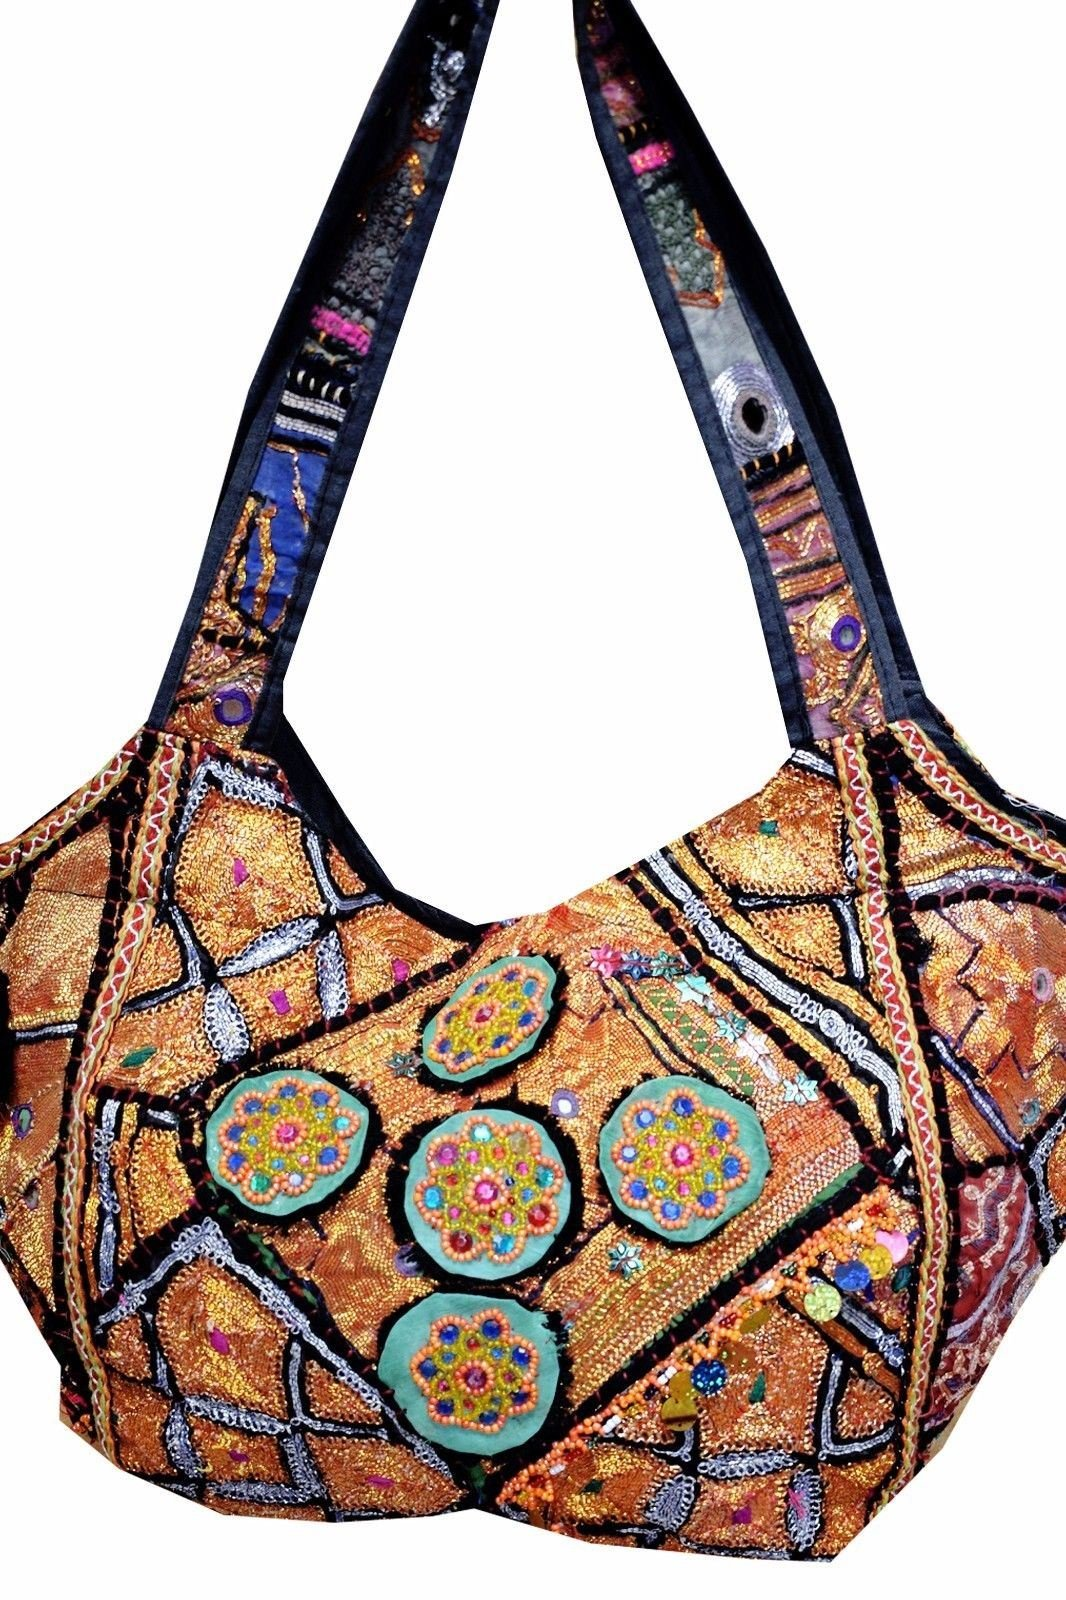 New Womens Handmade Vintage Tribal Patchwork Indian Ethnic Tote Hippie Gypsy Bohemian Shoulder Bag by Gypsia Studio (Image #2)